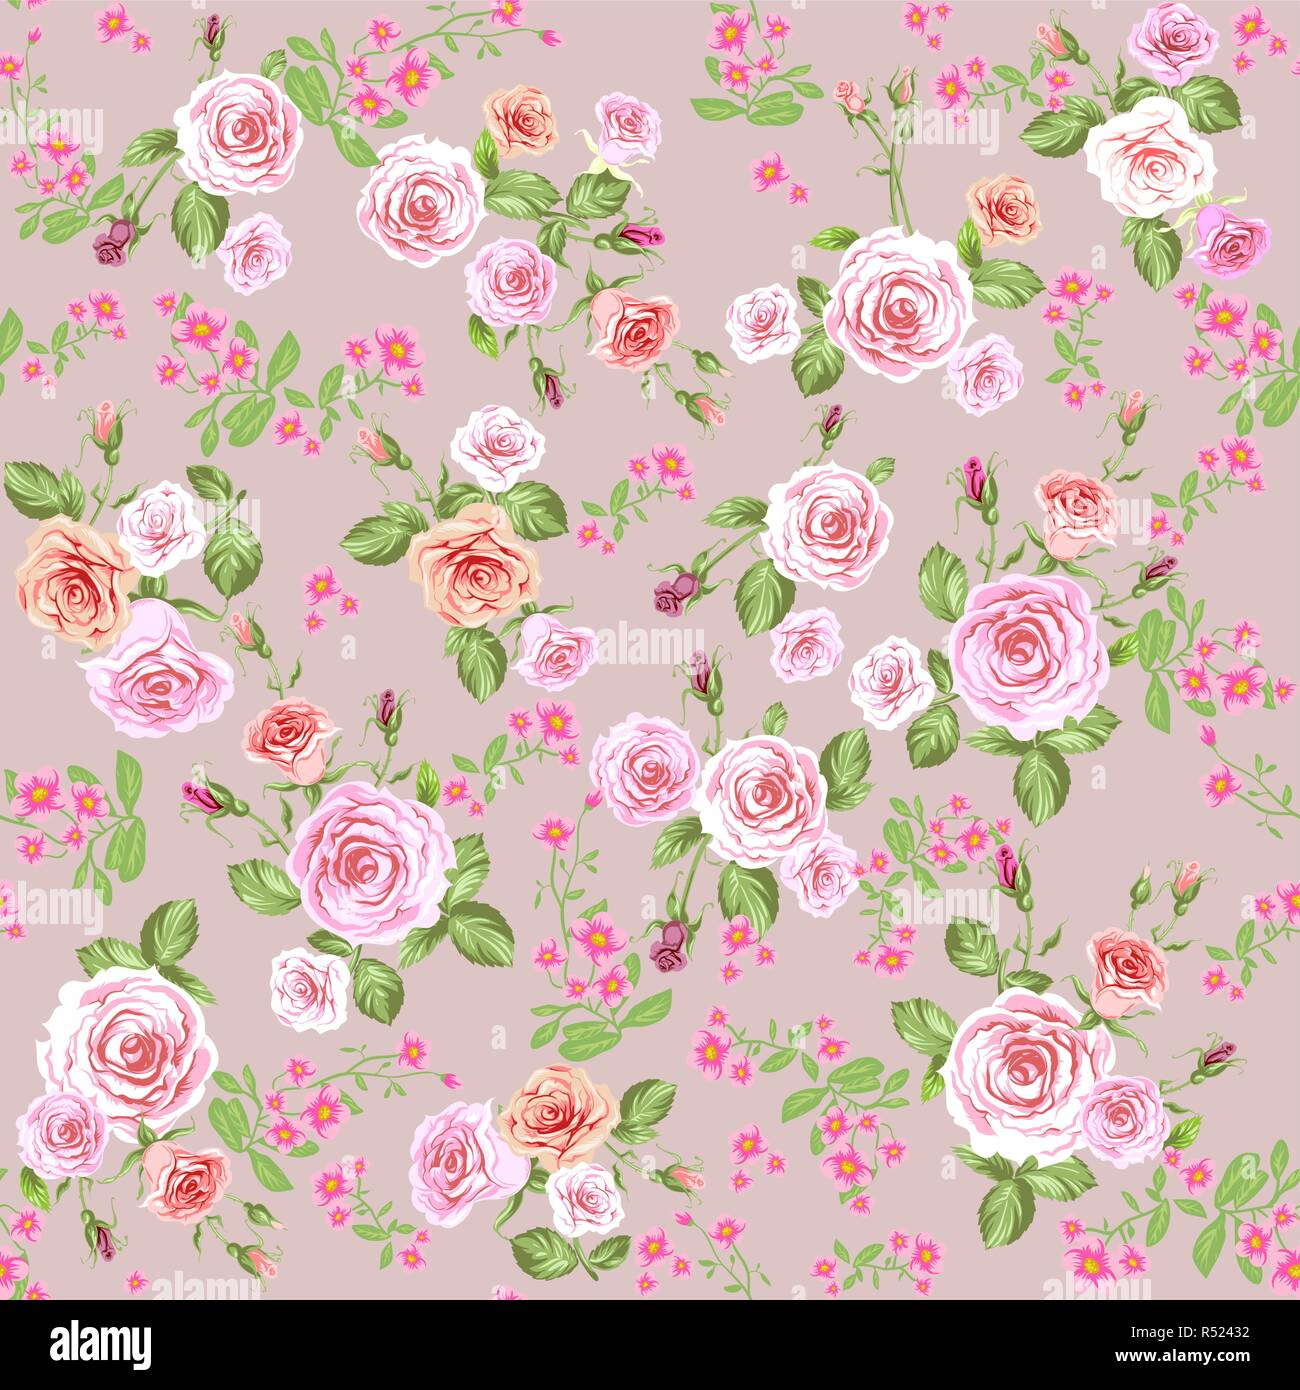 Floral Pattern Background With Pink Roses Repeating Vintage